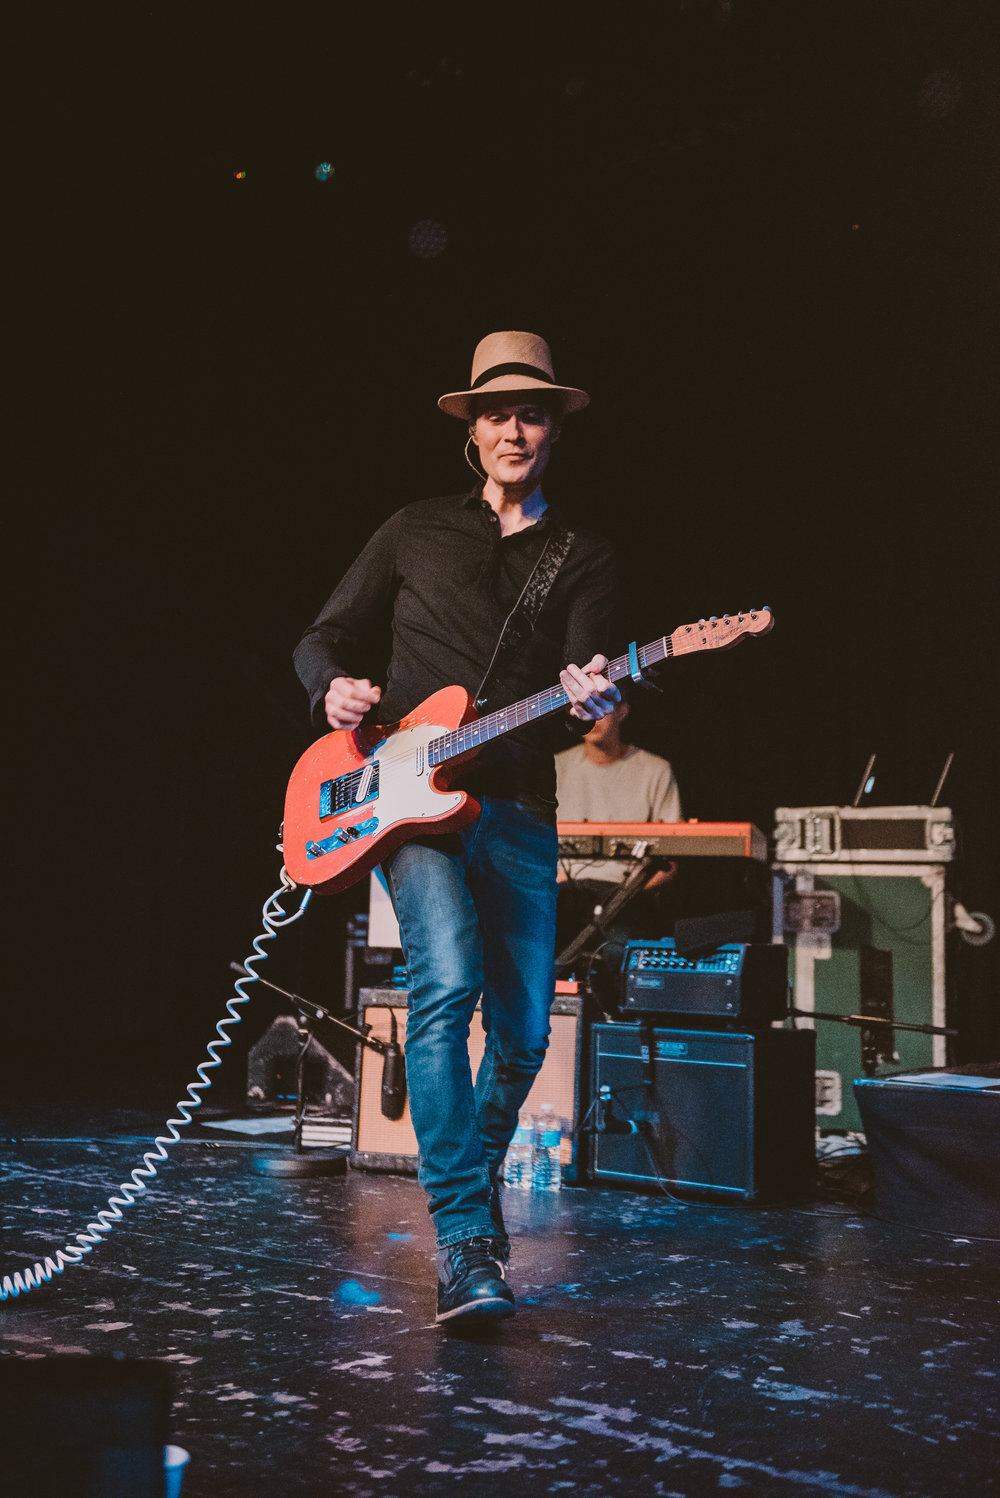 1_The_Fratellis-Commodore_Ballroom-Timothy_Nguyen-20180426 (1 of 22).jpg